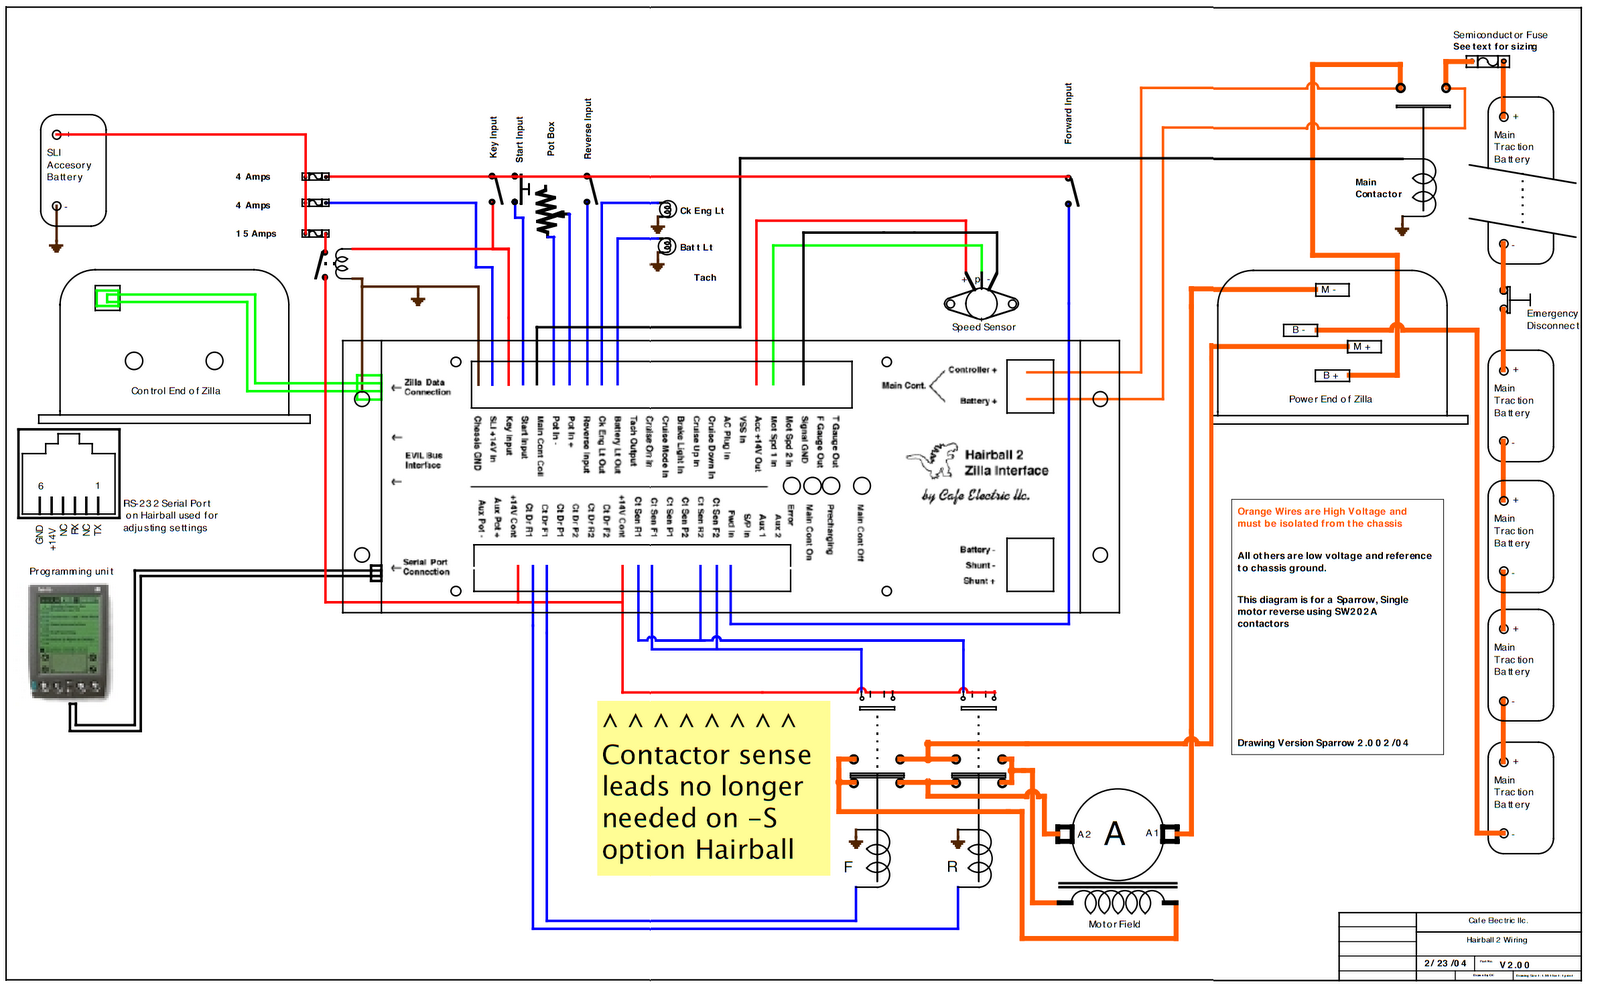 wiring diagram for electric scooters wiring electrical diagram chinese electric scooter wiring diagram chinese electric scooter wiring diagram [ 1600 x 997 Pixel ]